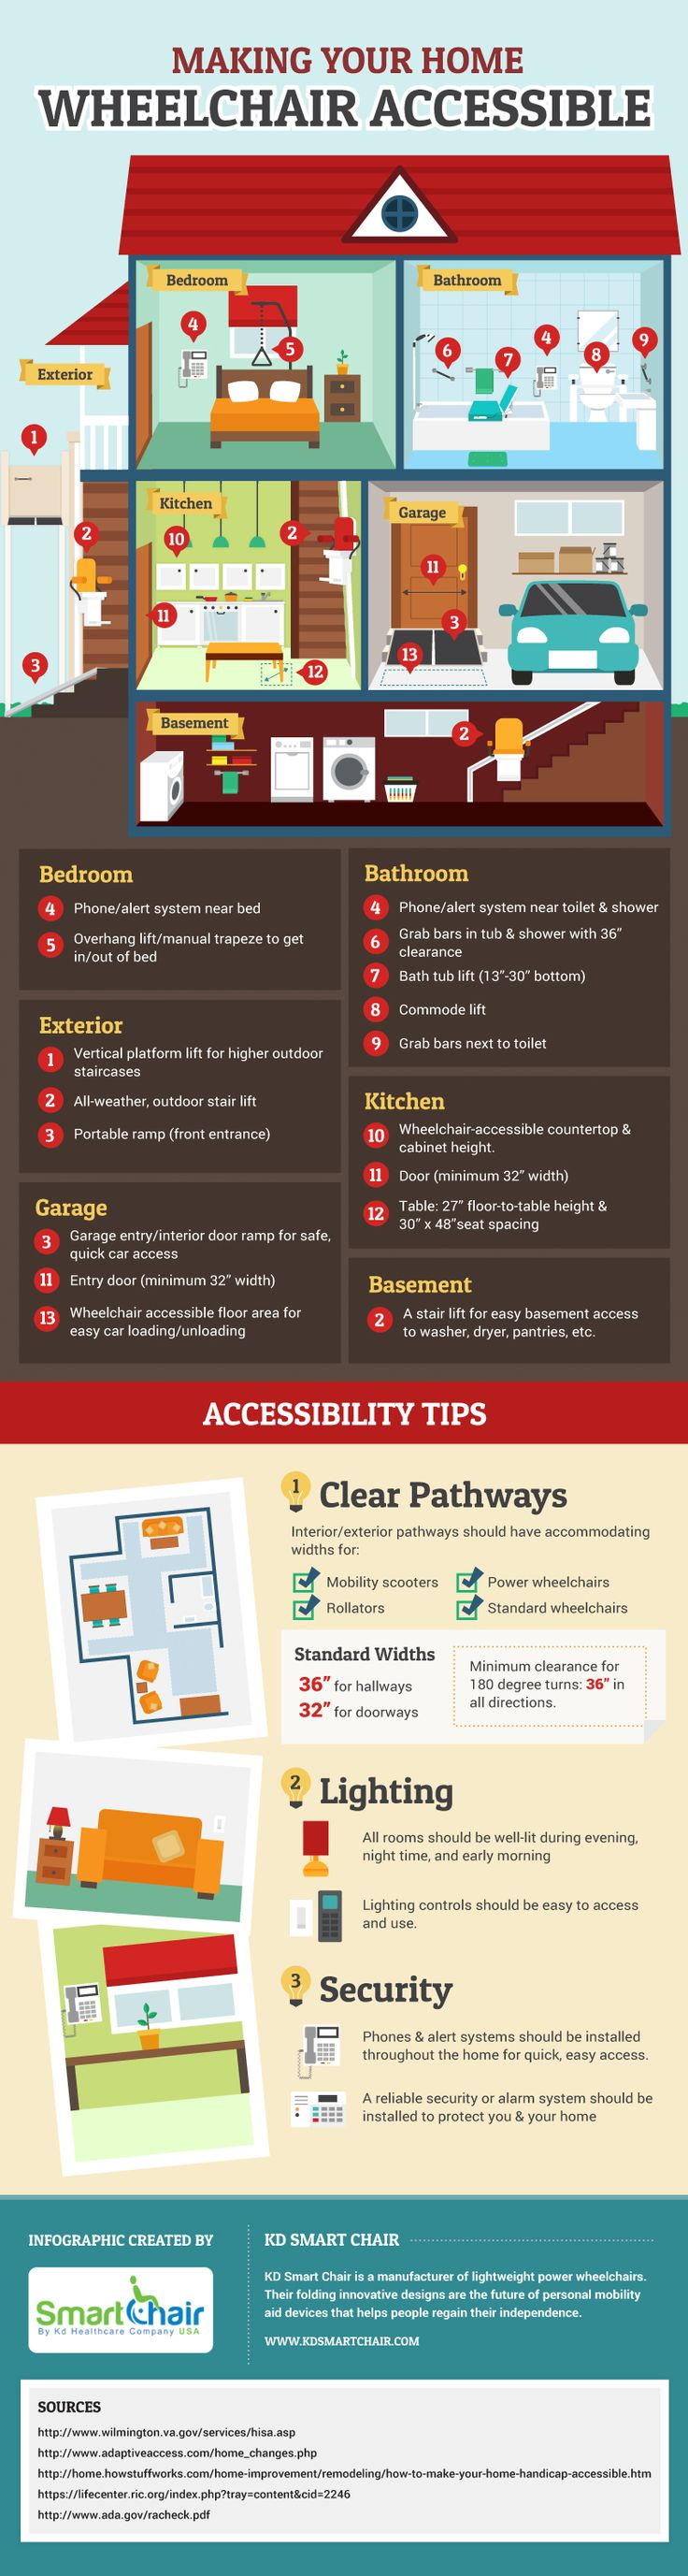 Making Your Home Wheelchair Accessible [Infographic] – KD Smart Chair (TAG: WHEELCHAIR ACCESSIBLE UNIVERSAL DESIGN)